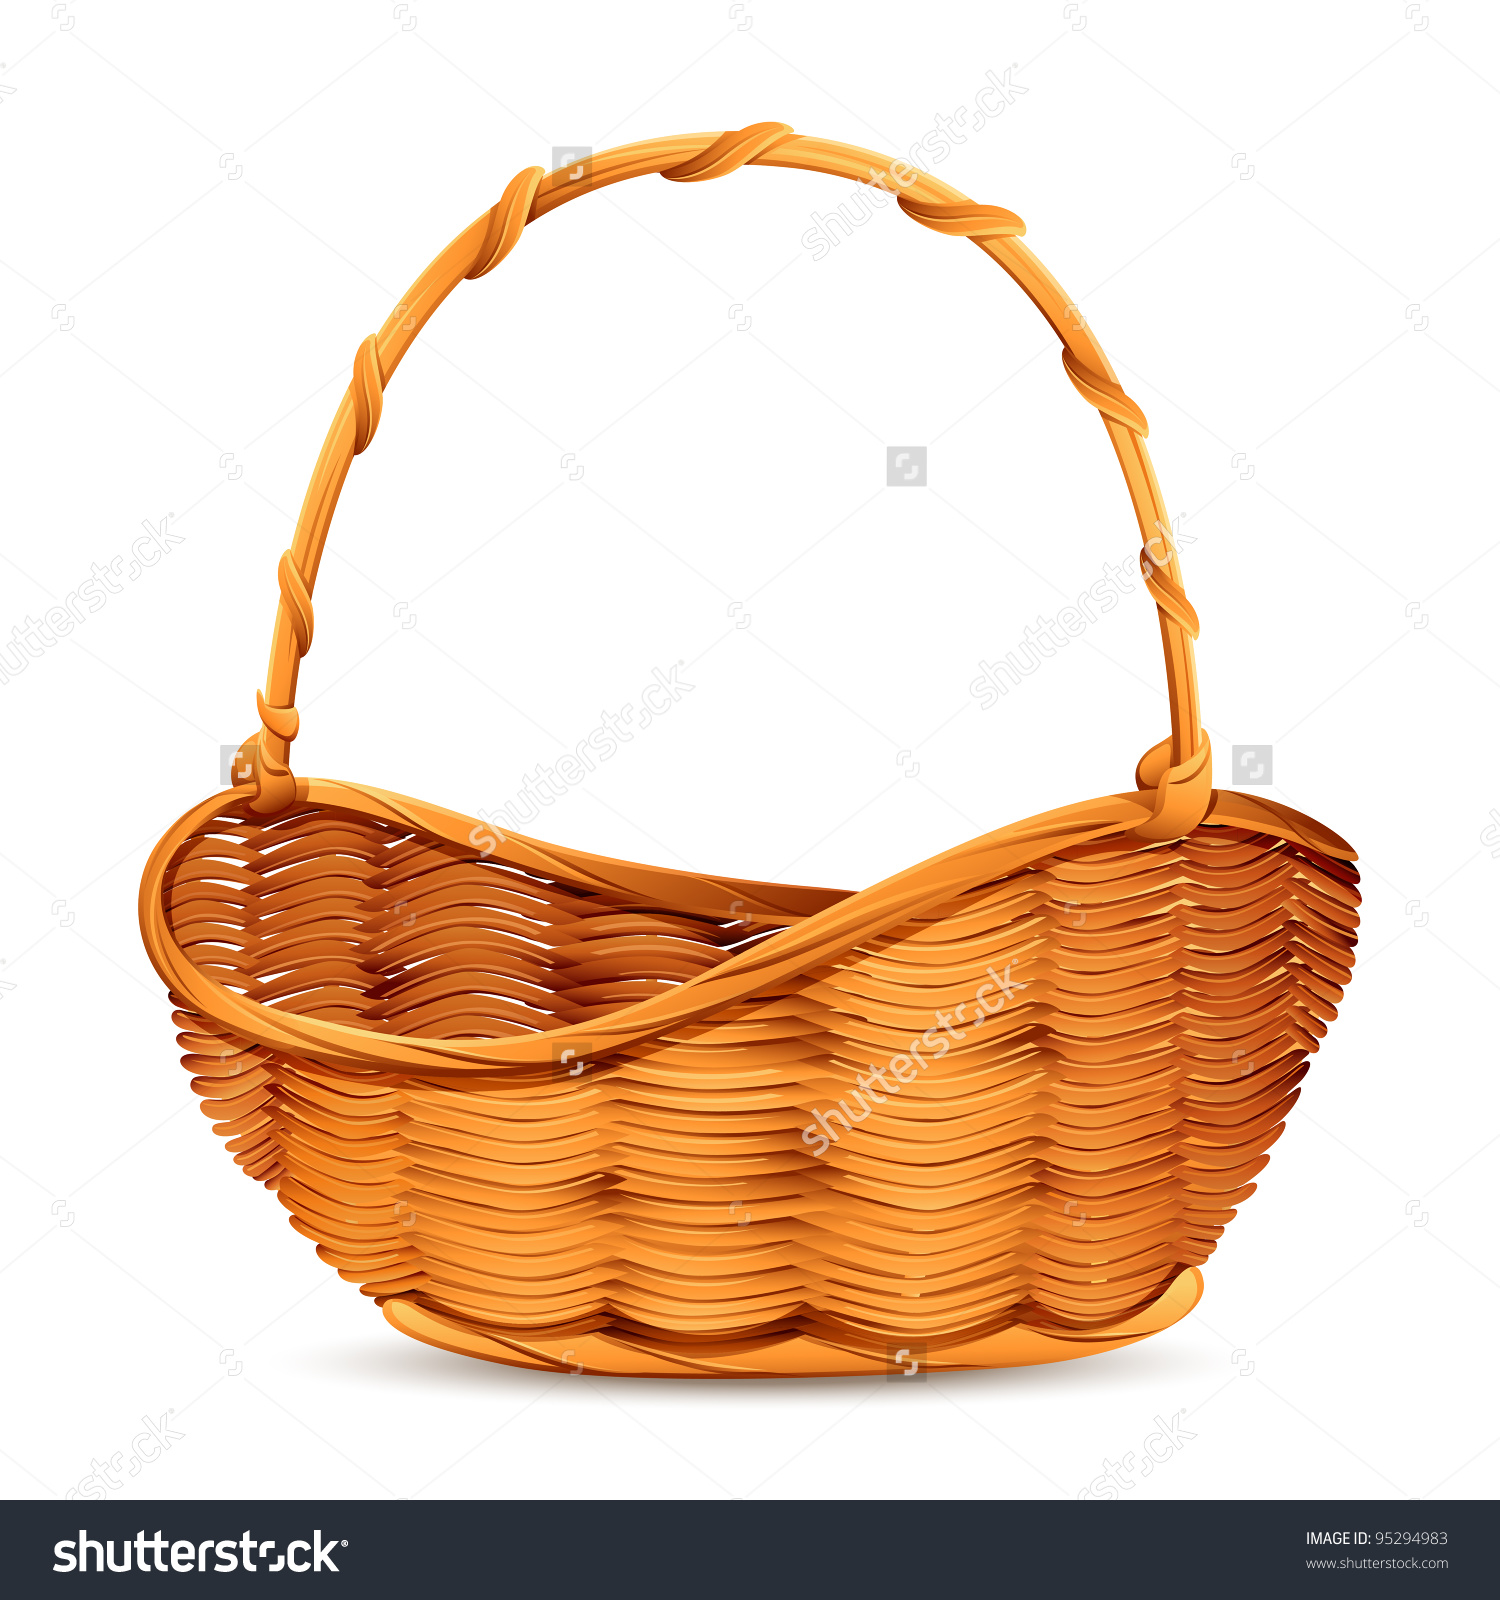 Cane Basket Clipart Clipground